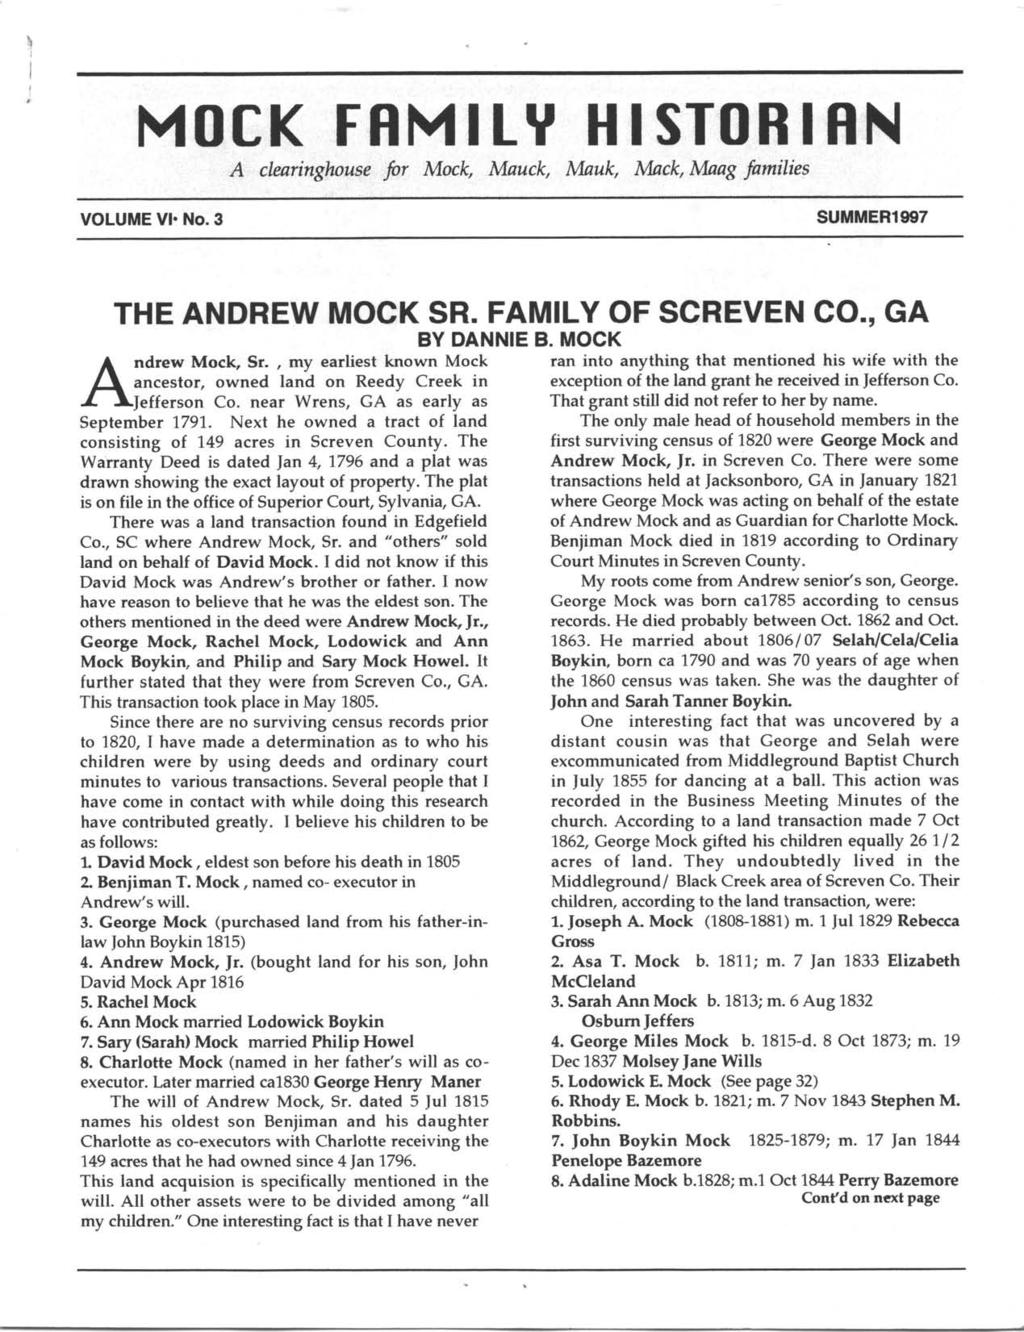 \ I I I MOCK FRMILY HISTOBIRN A cleringhoiuse fir Mocfu,Muck, Muk, Mck,IuIg fmilies VOLUME Vl. No.3 SUMMER1997 THE ANDREW MOCK SR. FAMILY OF SCREVEN CO., GA BY DANNIE B. MOCK A ndrew Mock, Sr.